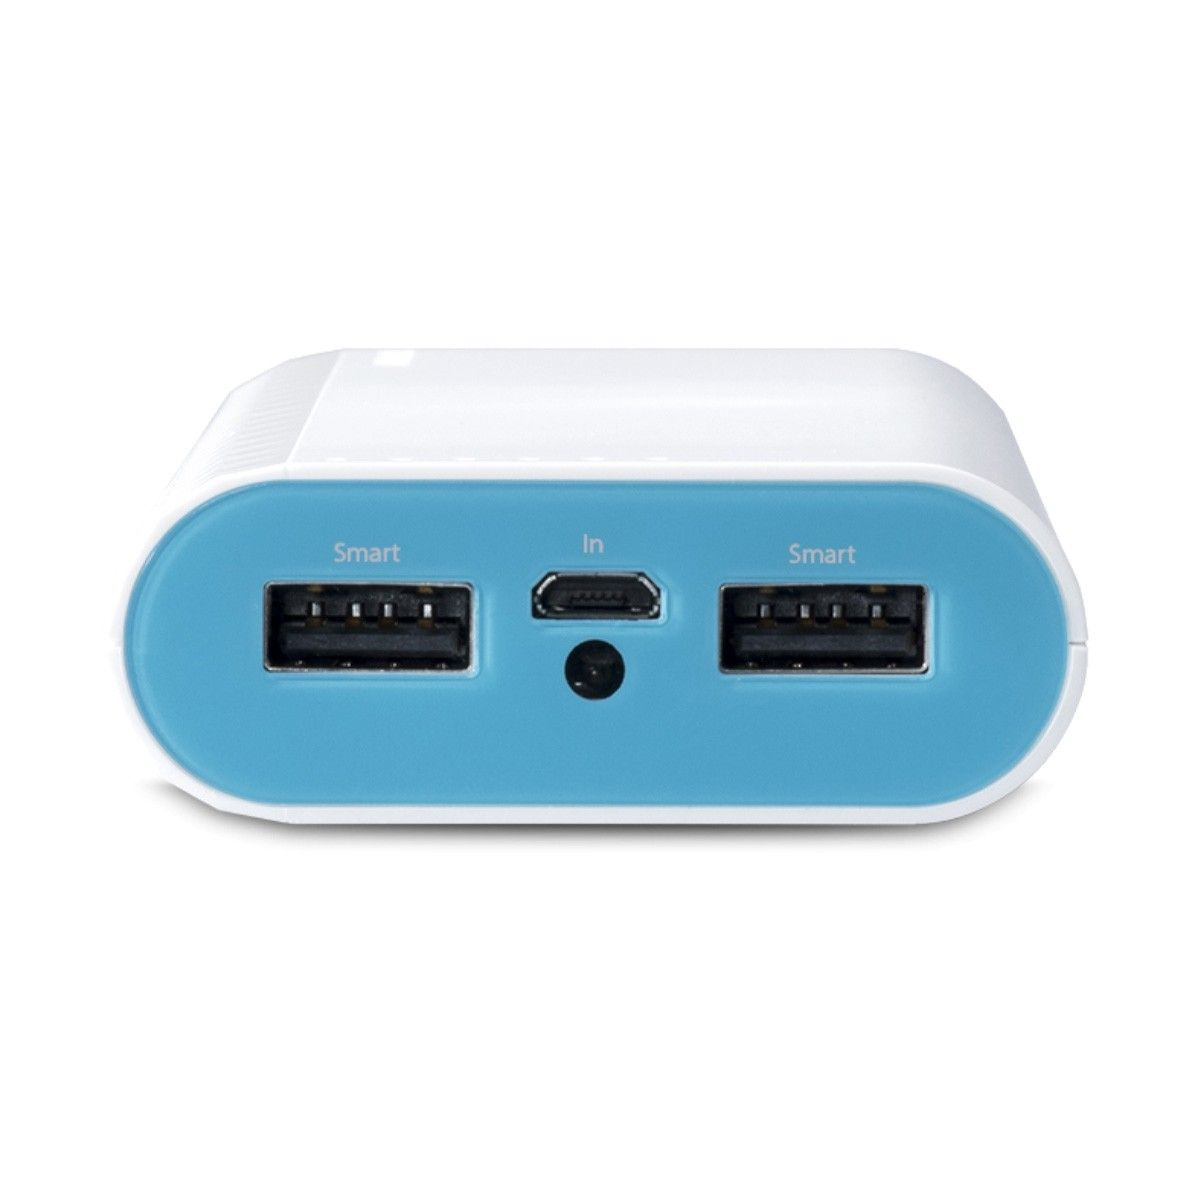 Active Power Bank 30000 Mah Powerbank Tp Link Power